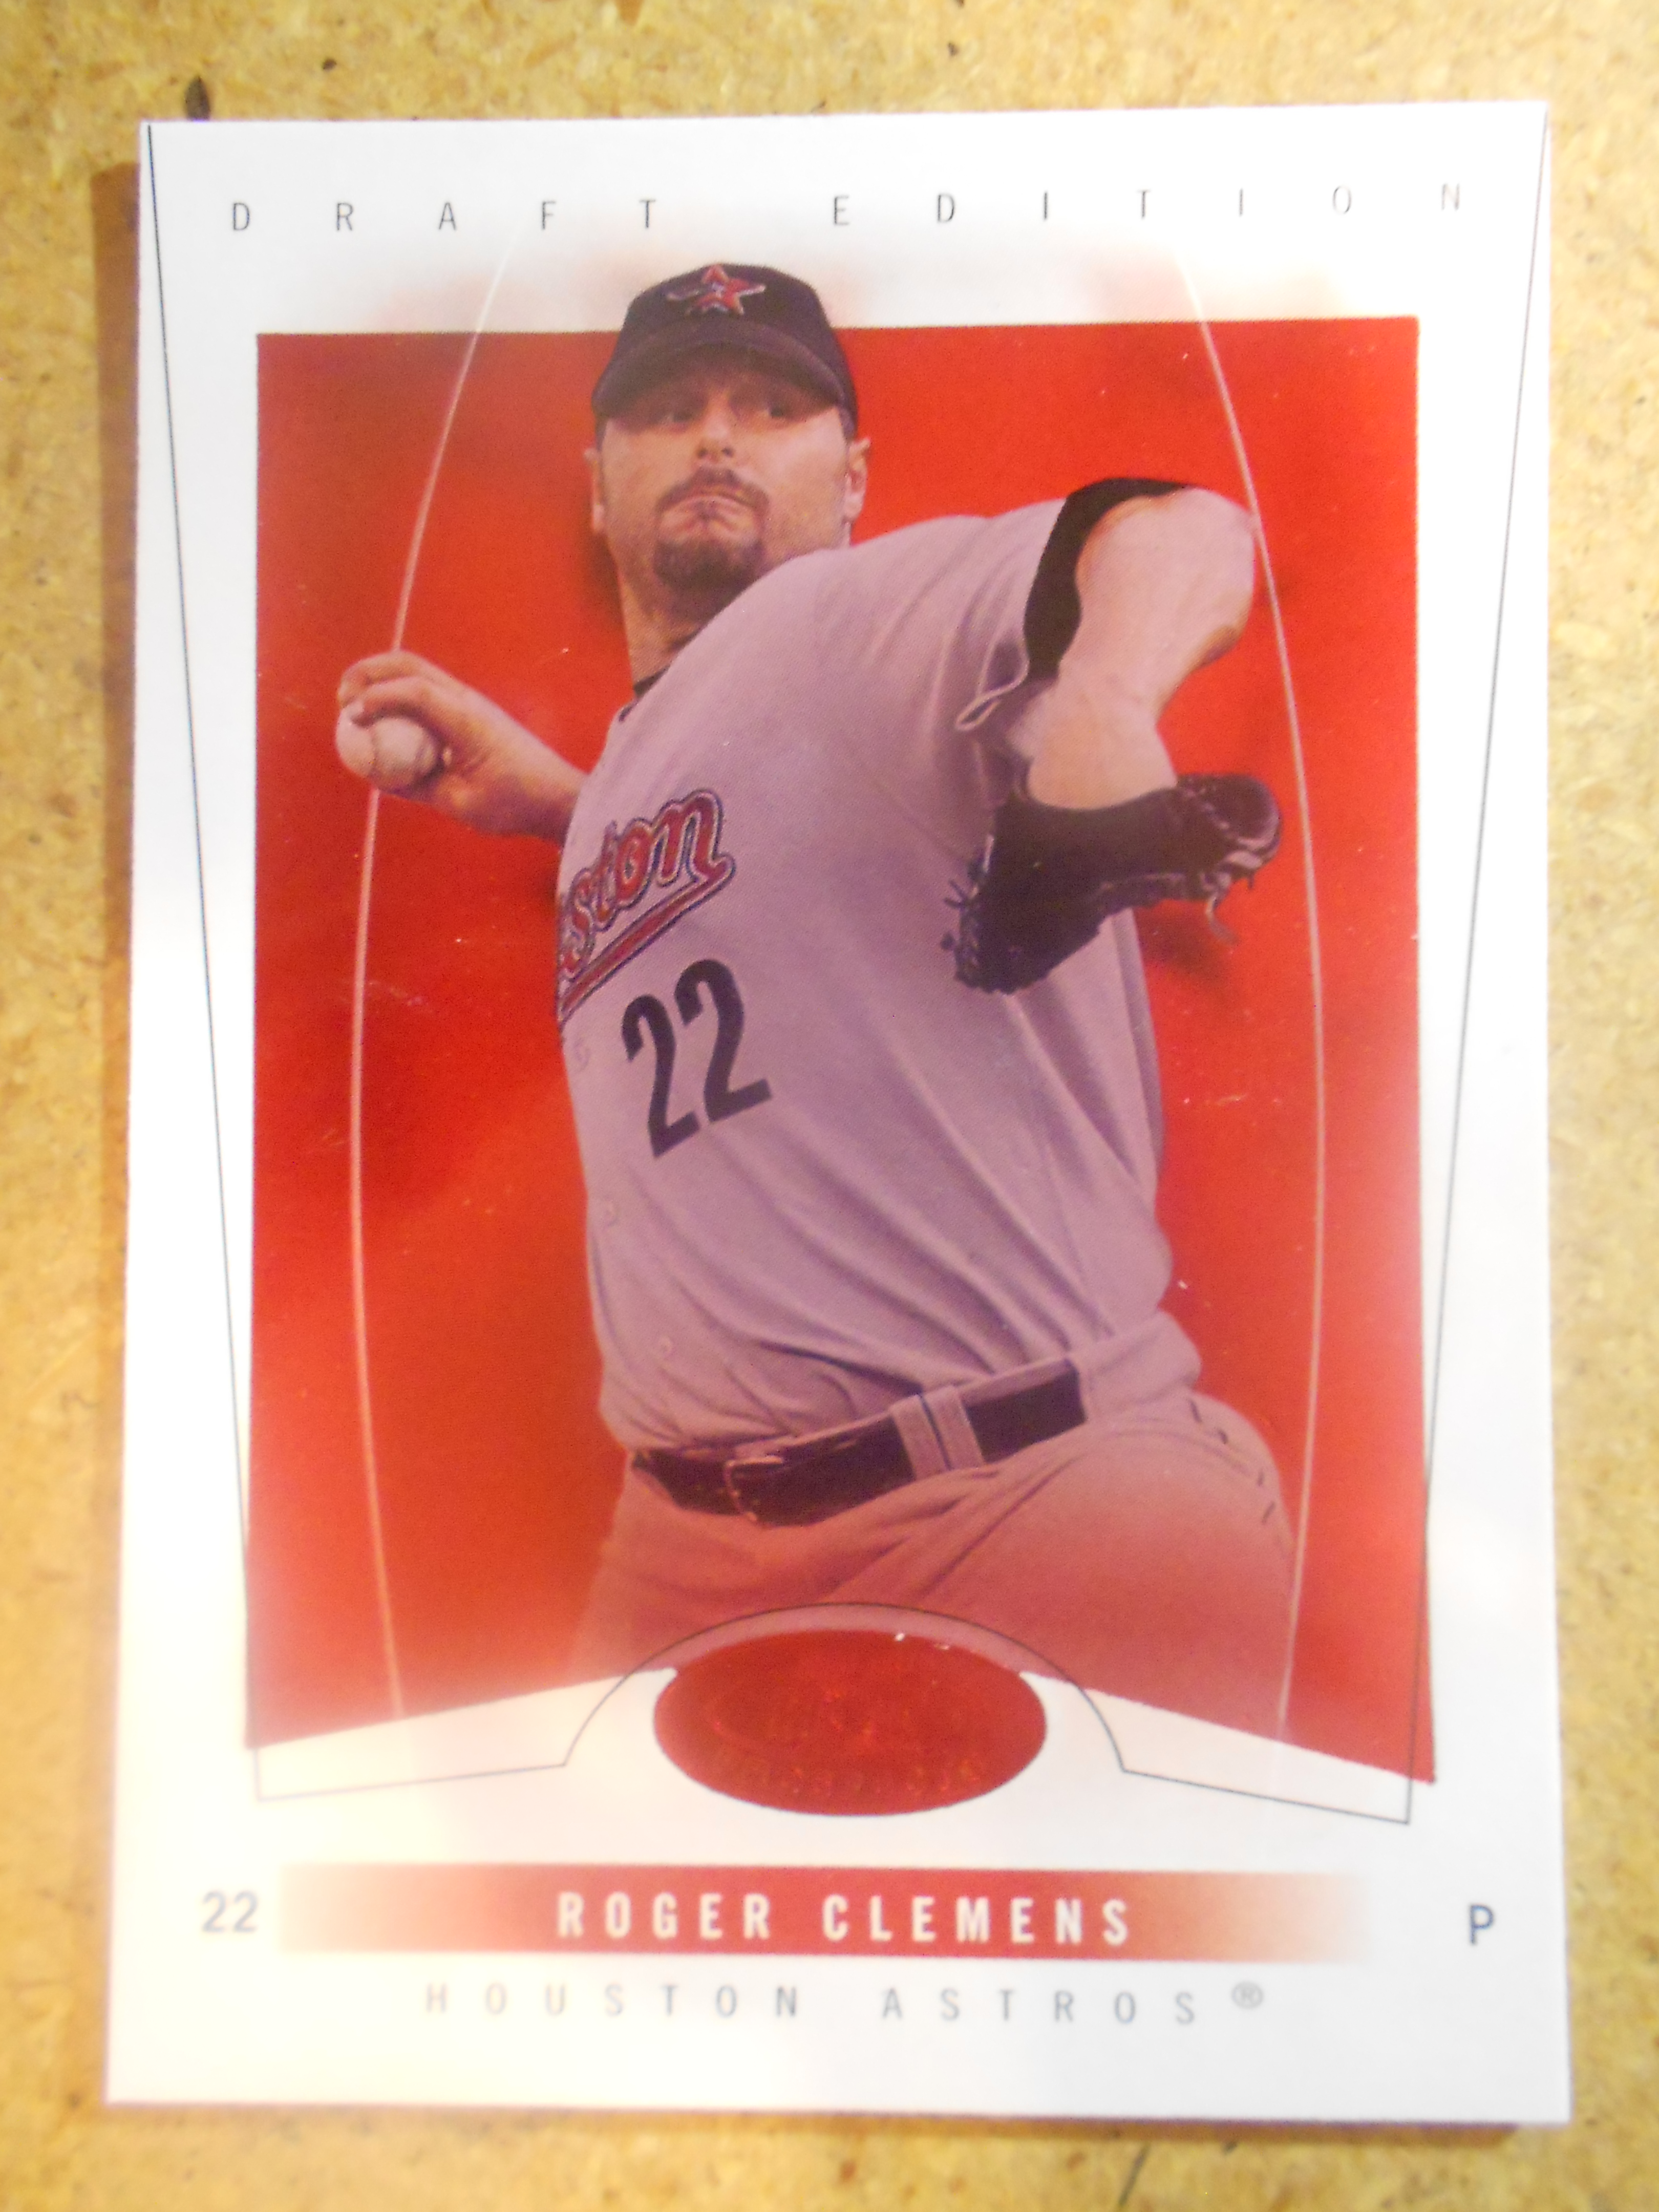 2004 Hot Prospects Draft Red Hot #4 Roger Clemens